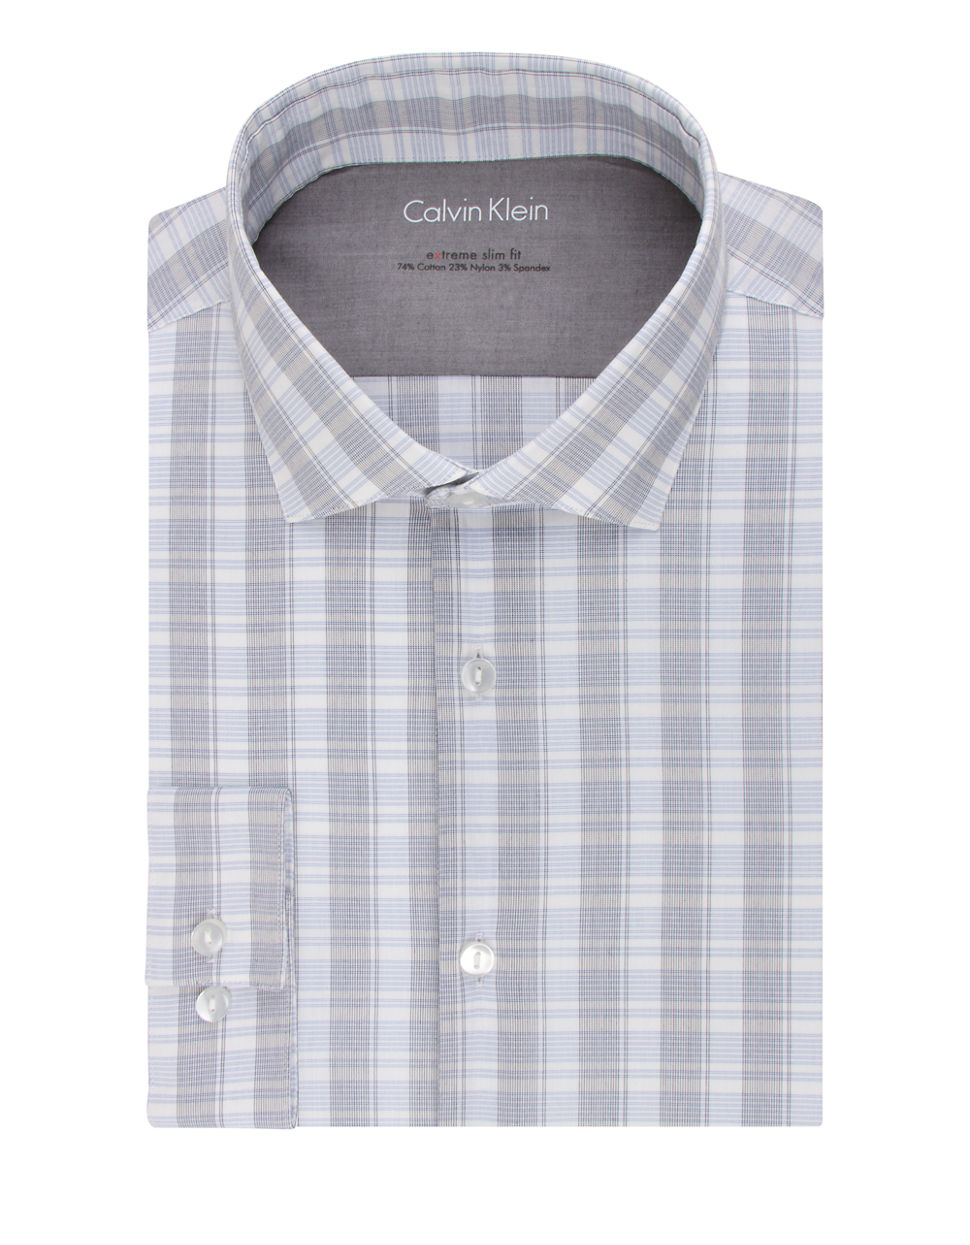 Calvin klein extreme slim fit plaid check dress shirt in for Calvin klein athletic fit dress shirt